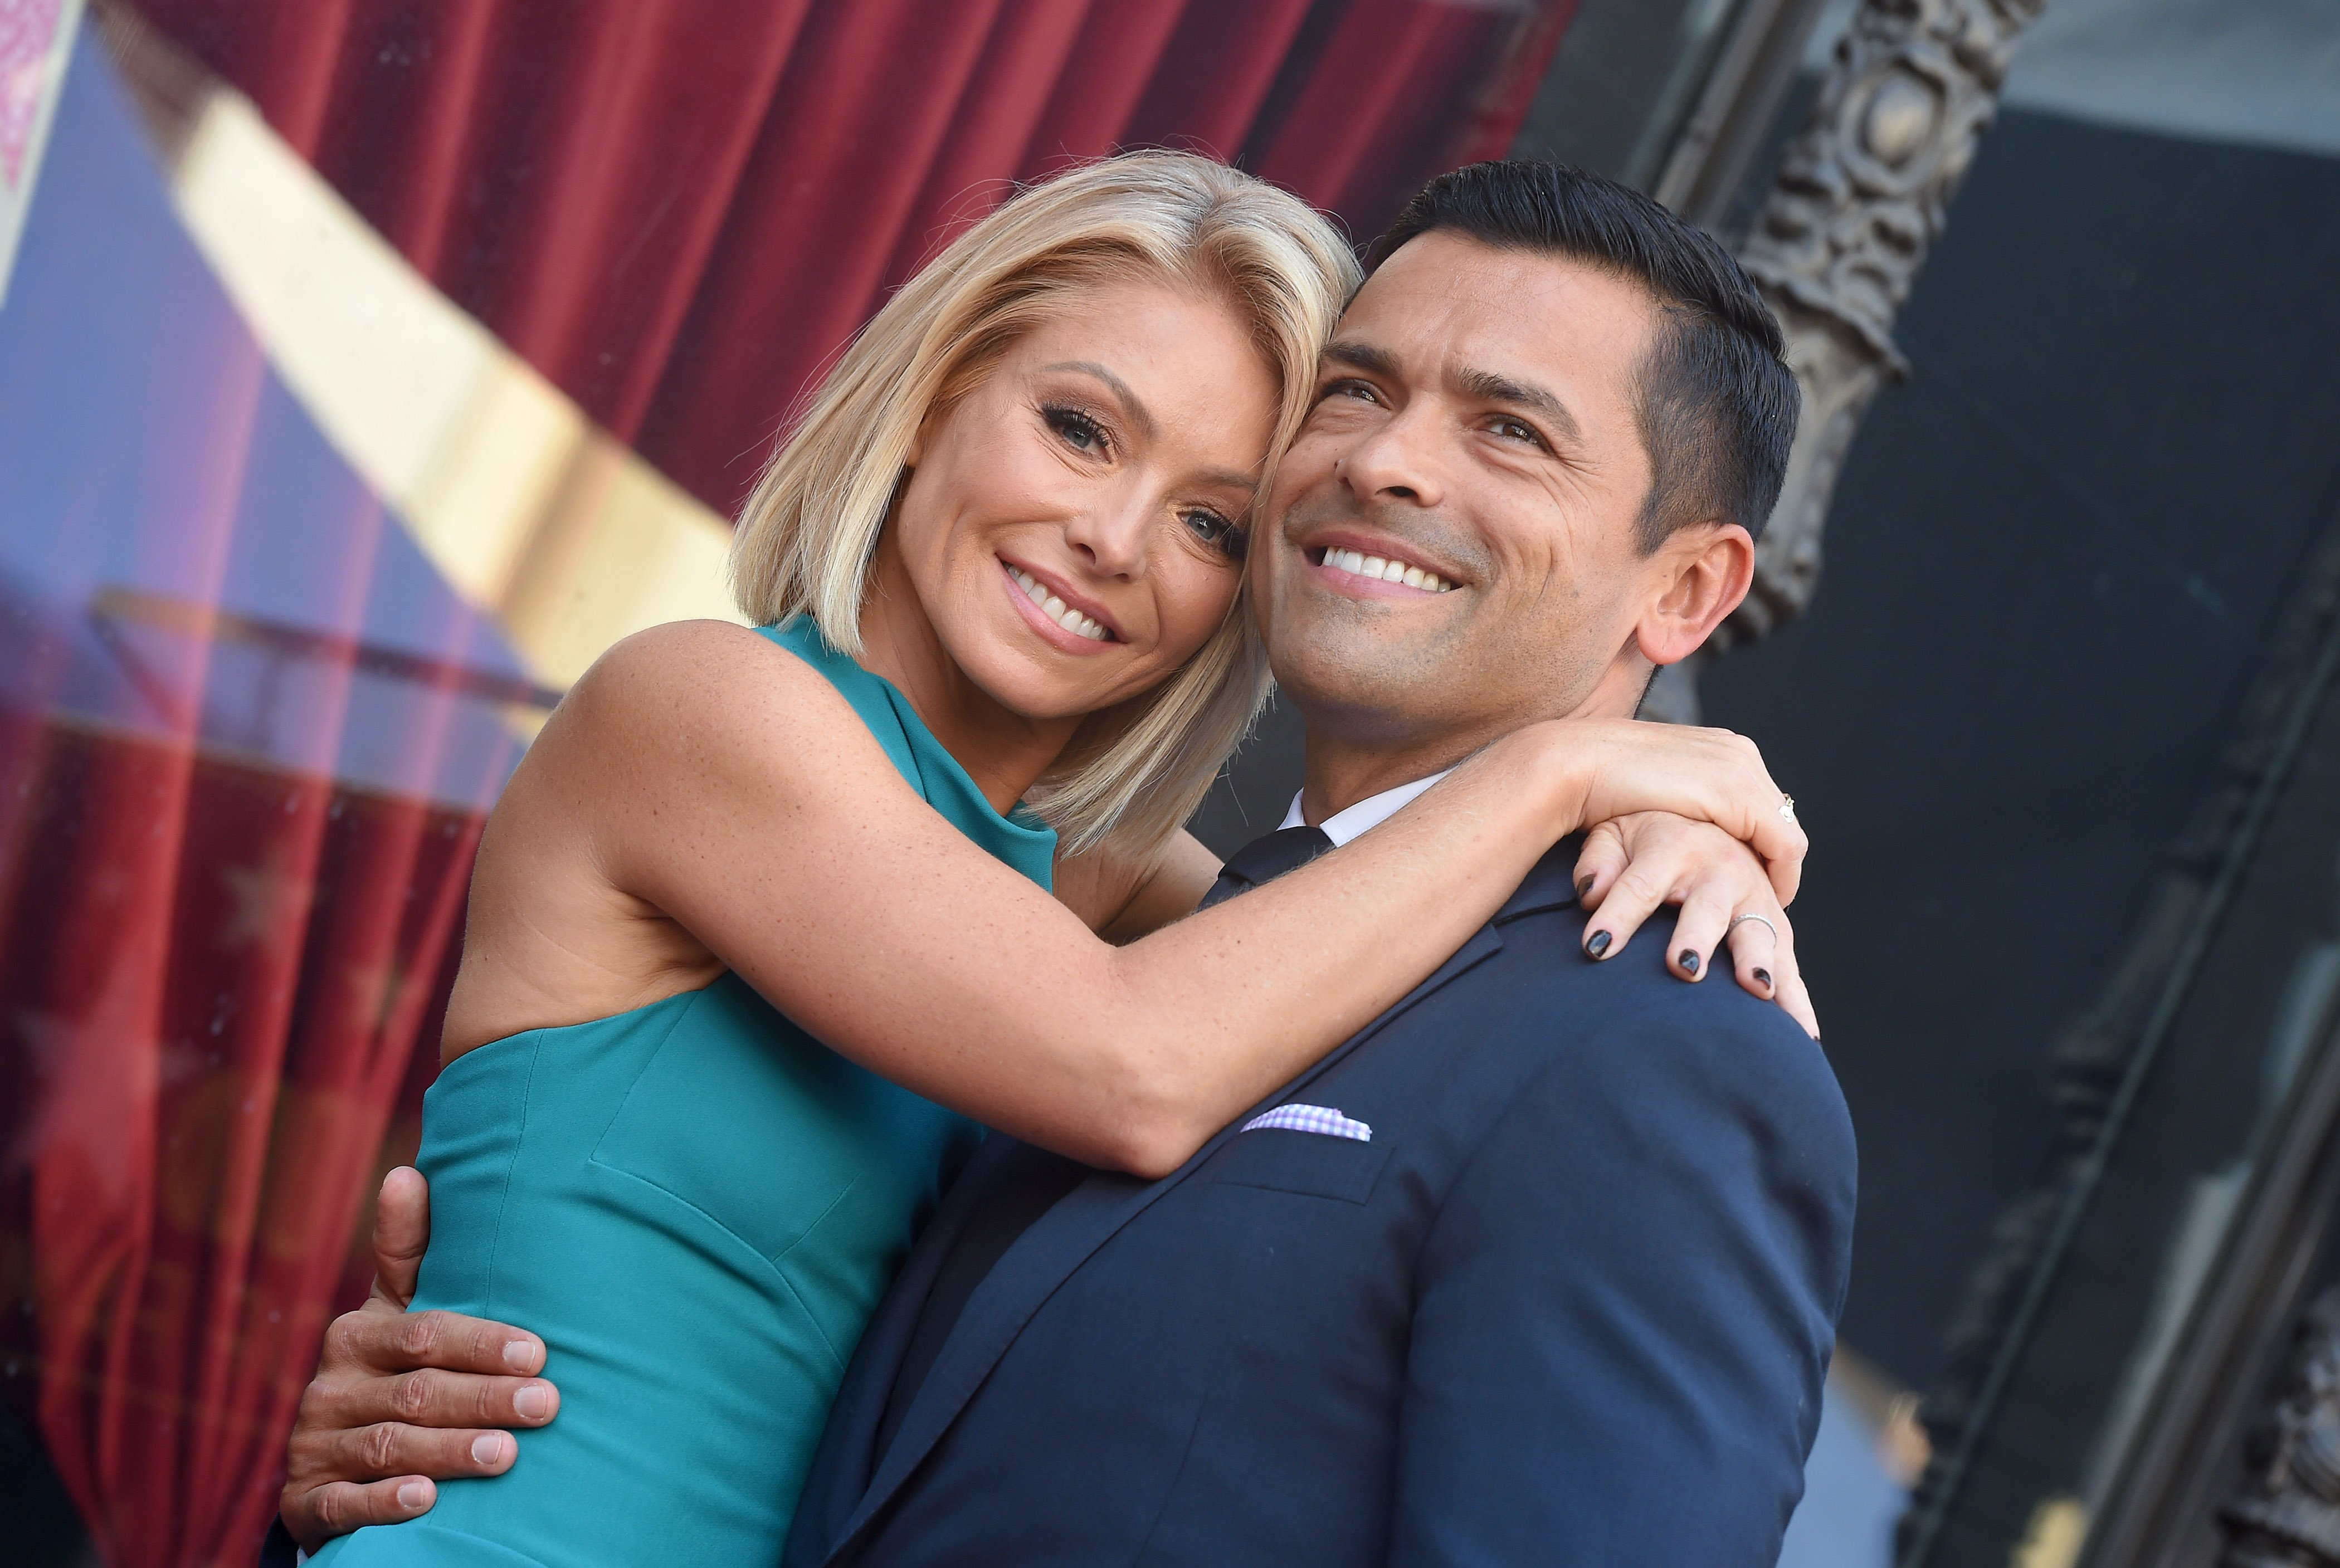 Kelly Ripa and Mark Consuelos attend the ceremony honoring Kelly Ripa with a star on the Hollywood Walk of Fame on October 12, 2015 in Hollywood, California | Photo: Getty Images